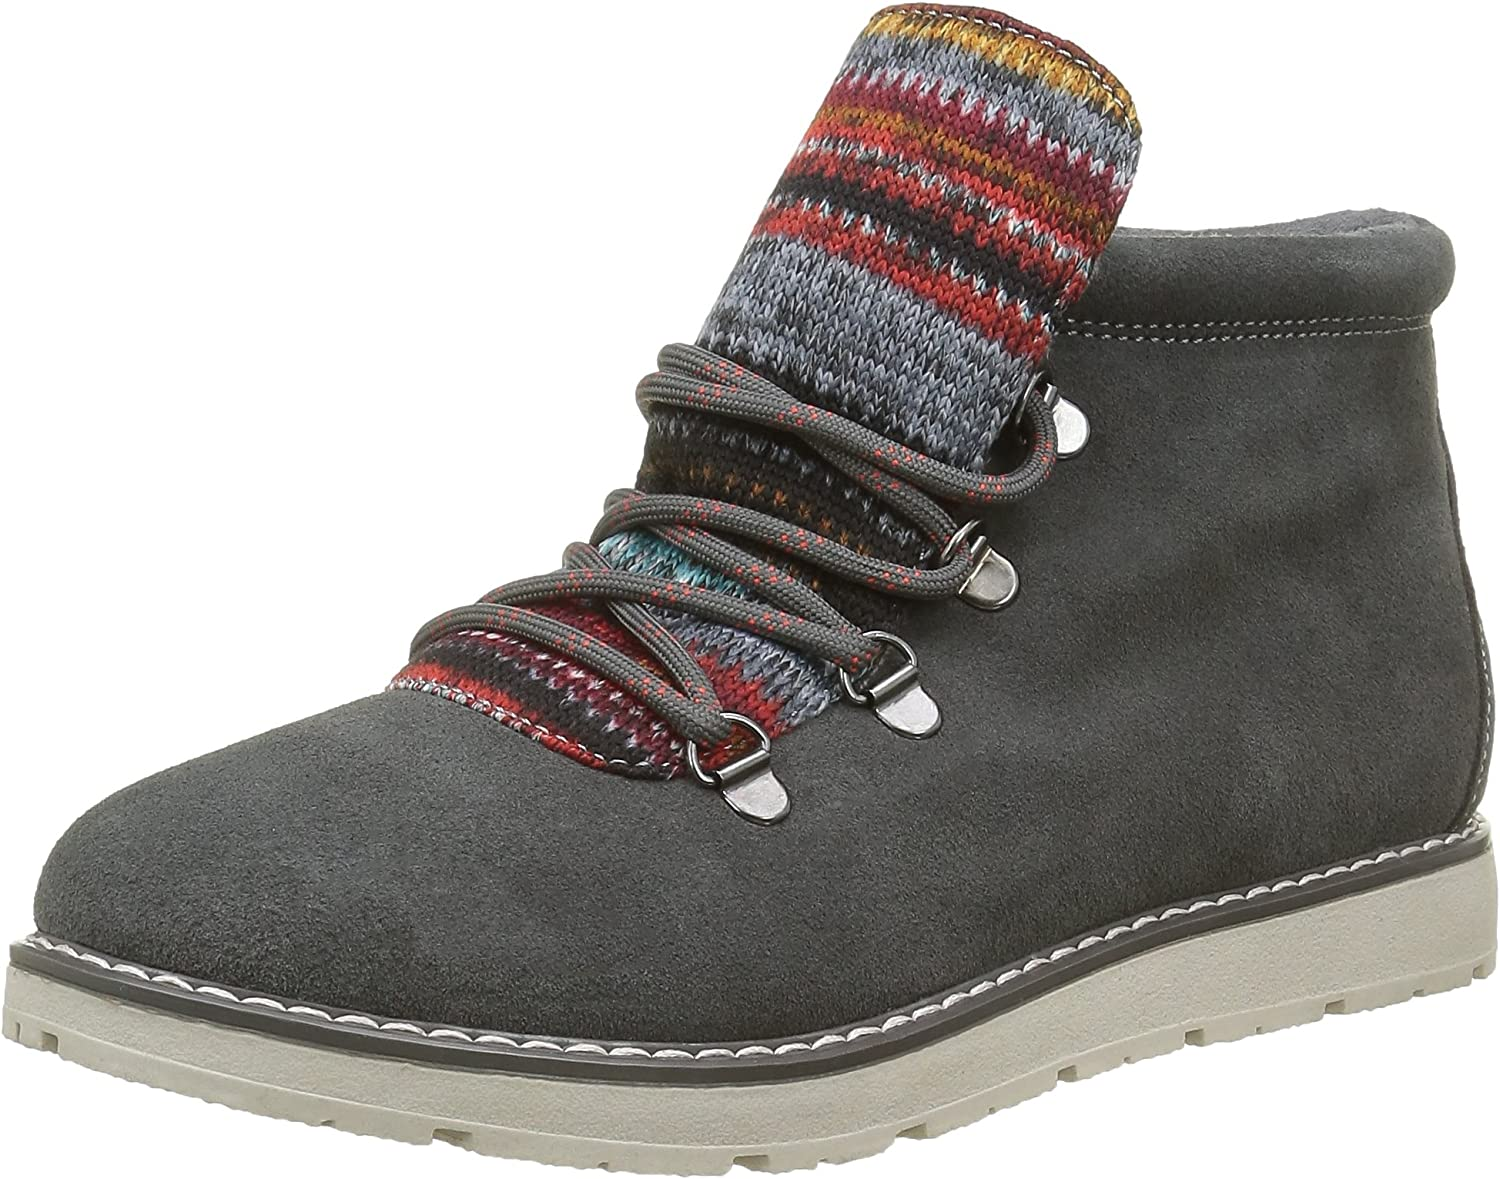 Skechers Womens BOBS Alpine - S'Mores Ankle Boot